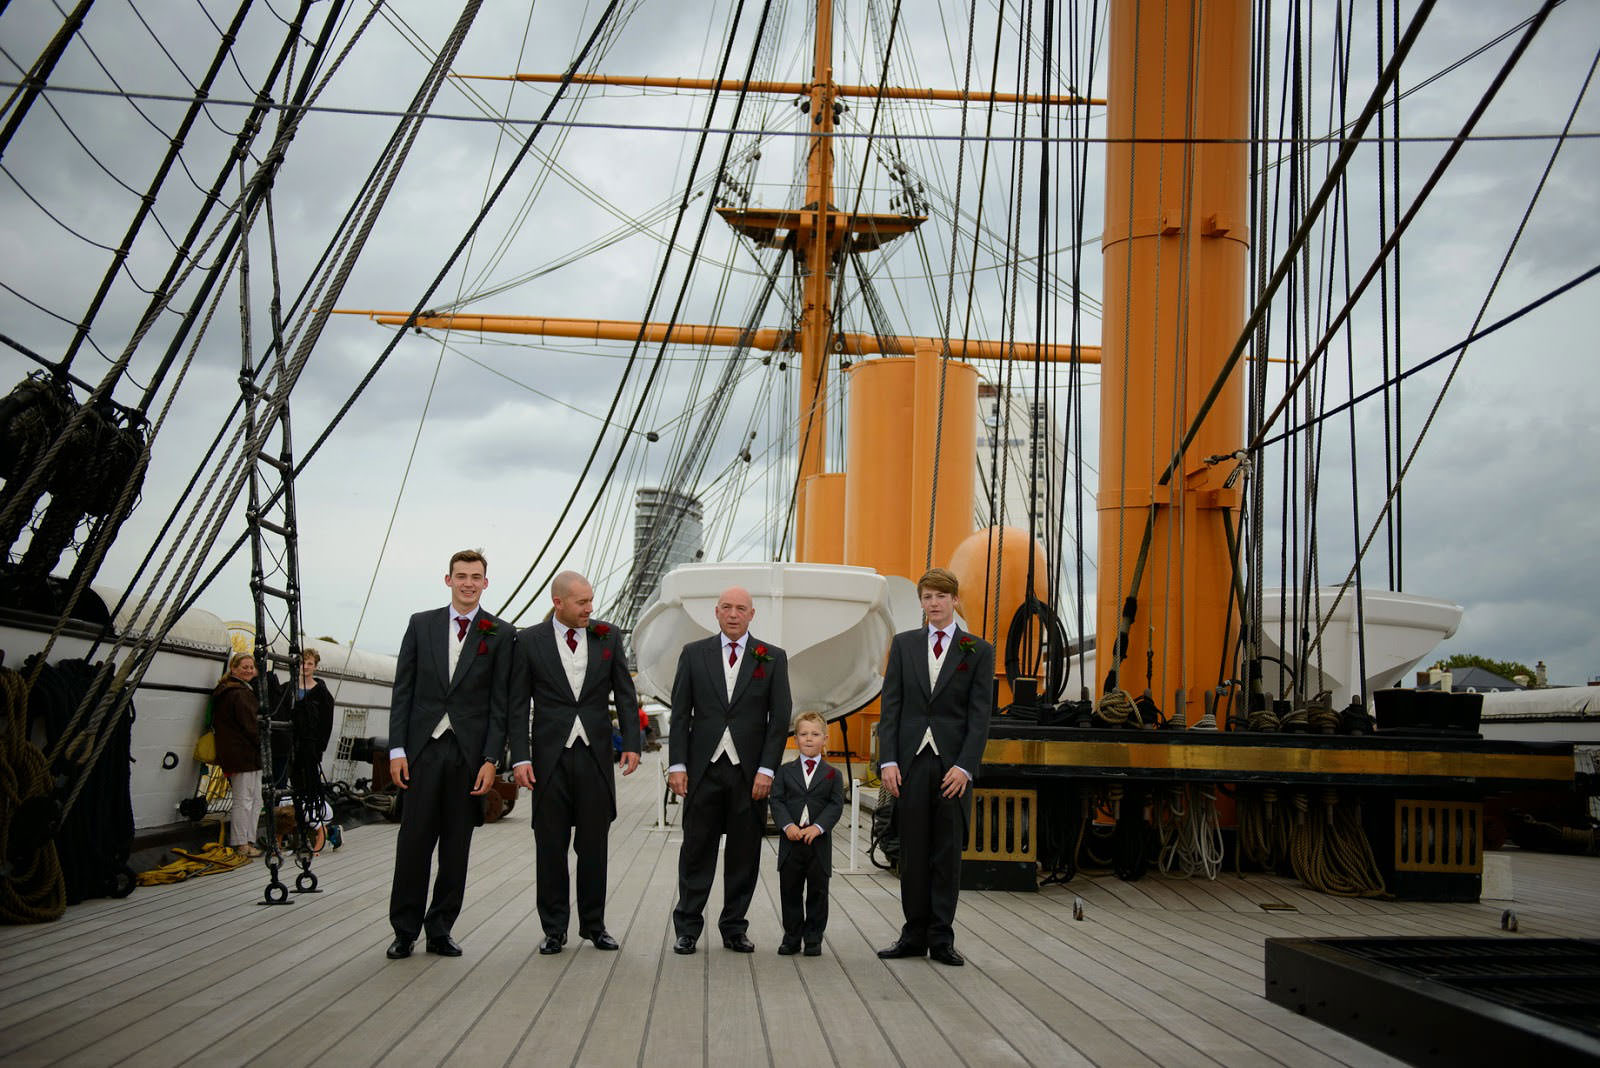 WEDDING PHOTOGRAPHER HMS WARRIOR IIJ